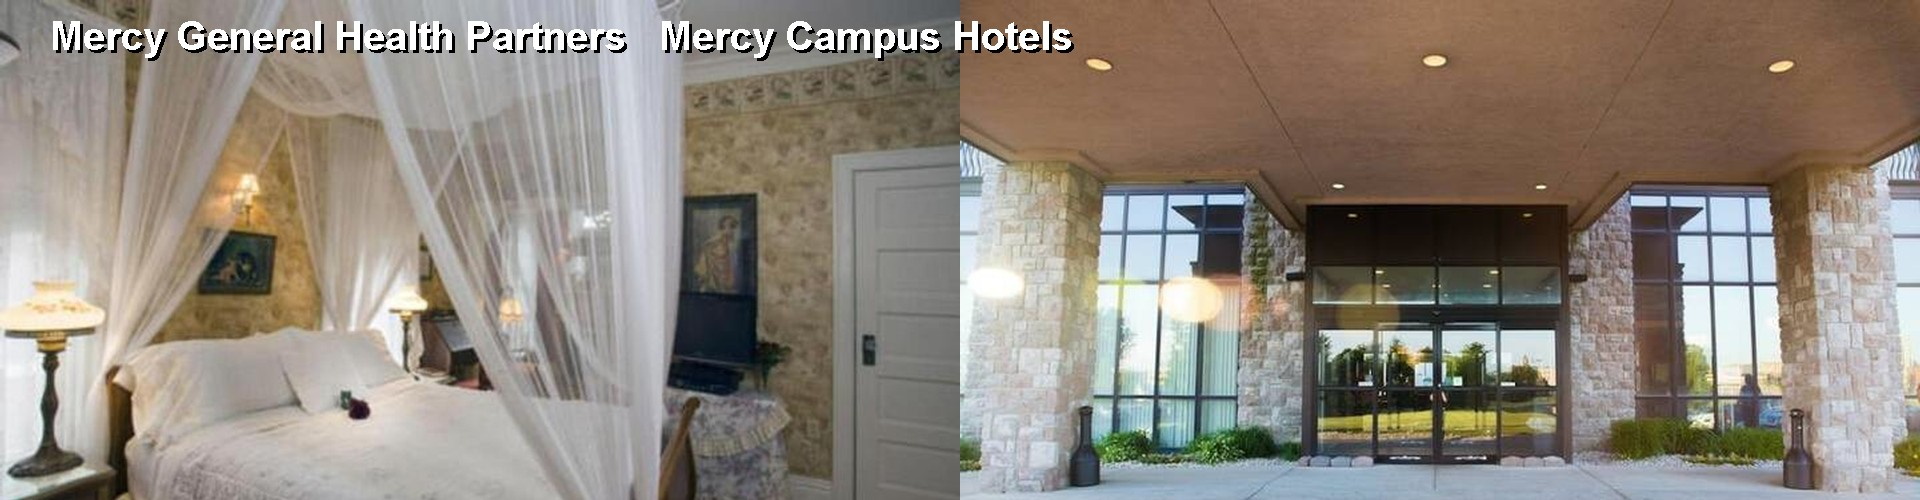 5 Best Hotels near Mercy General Health Partners Mercy Campus